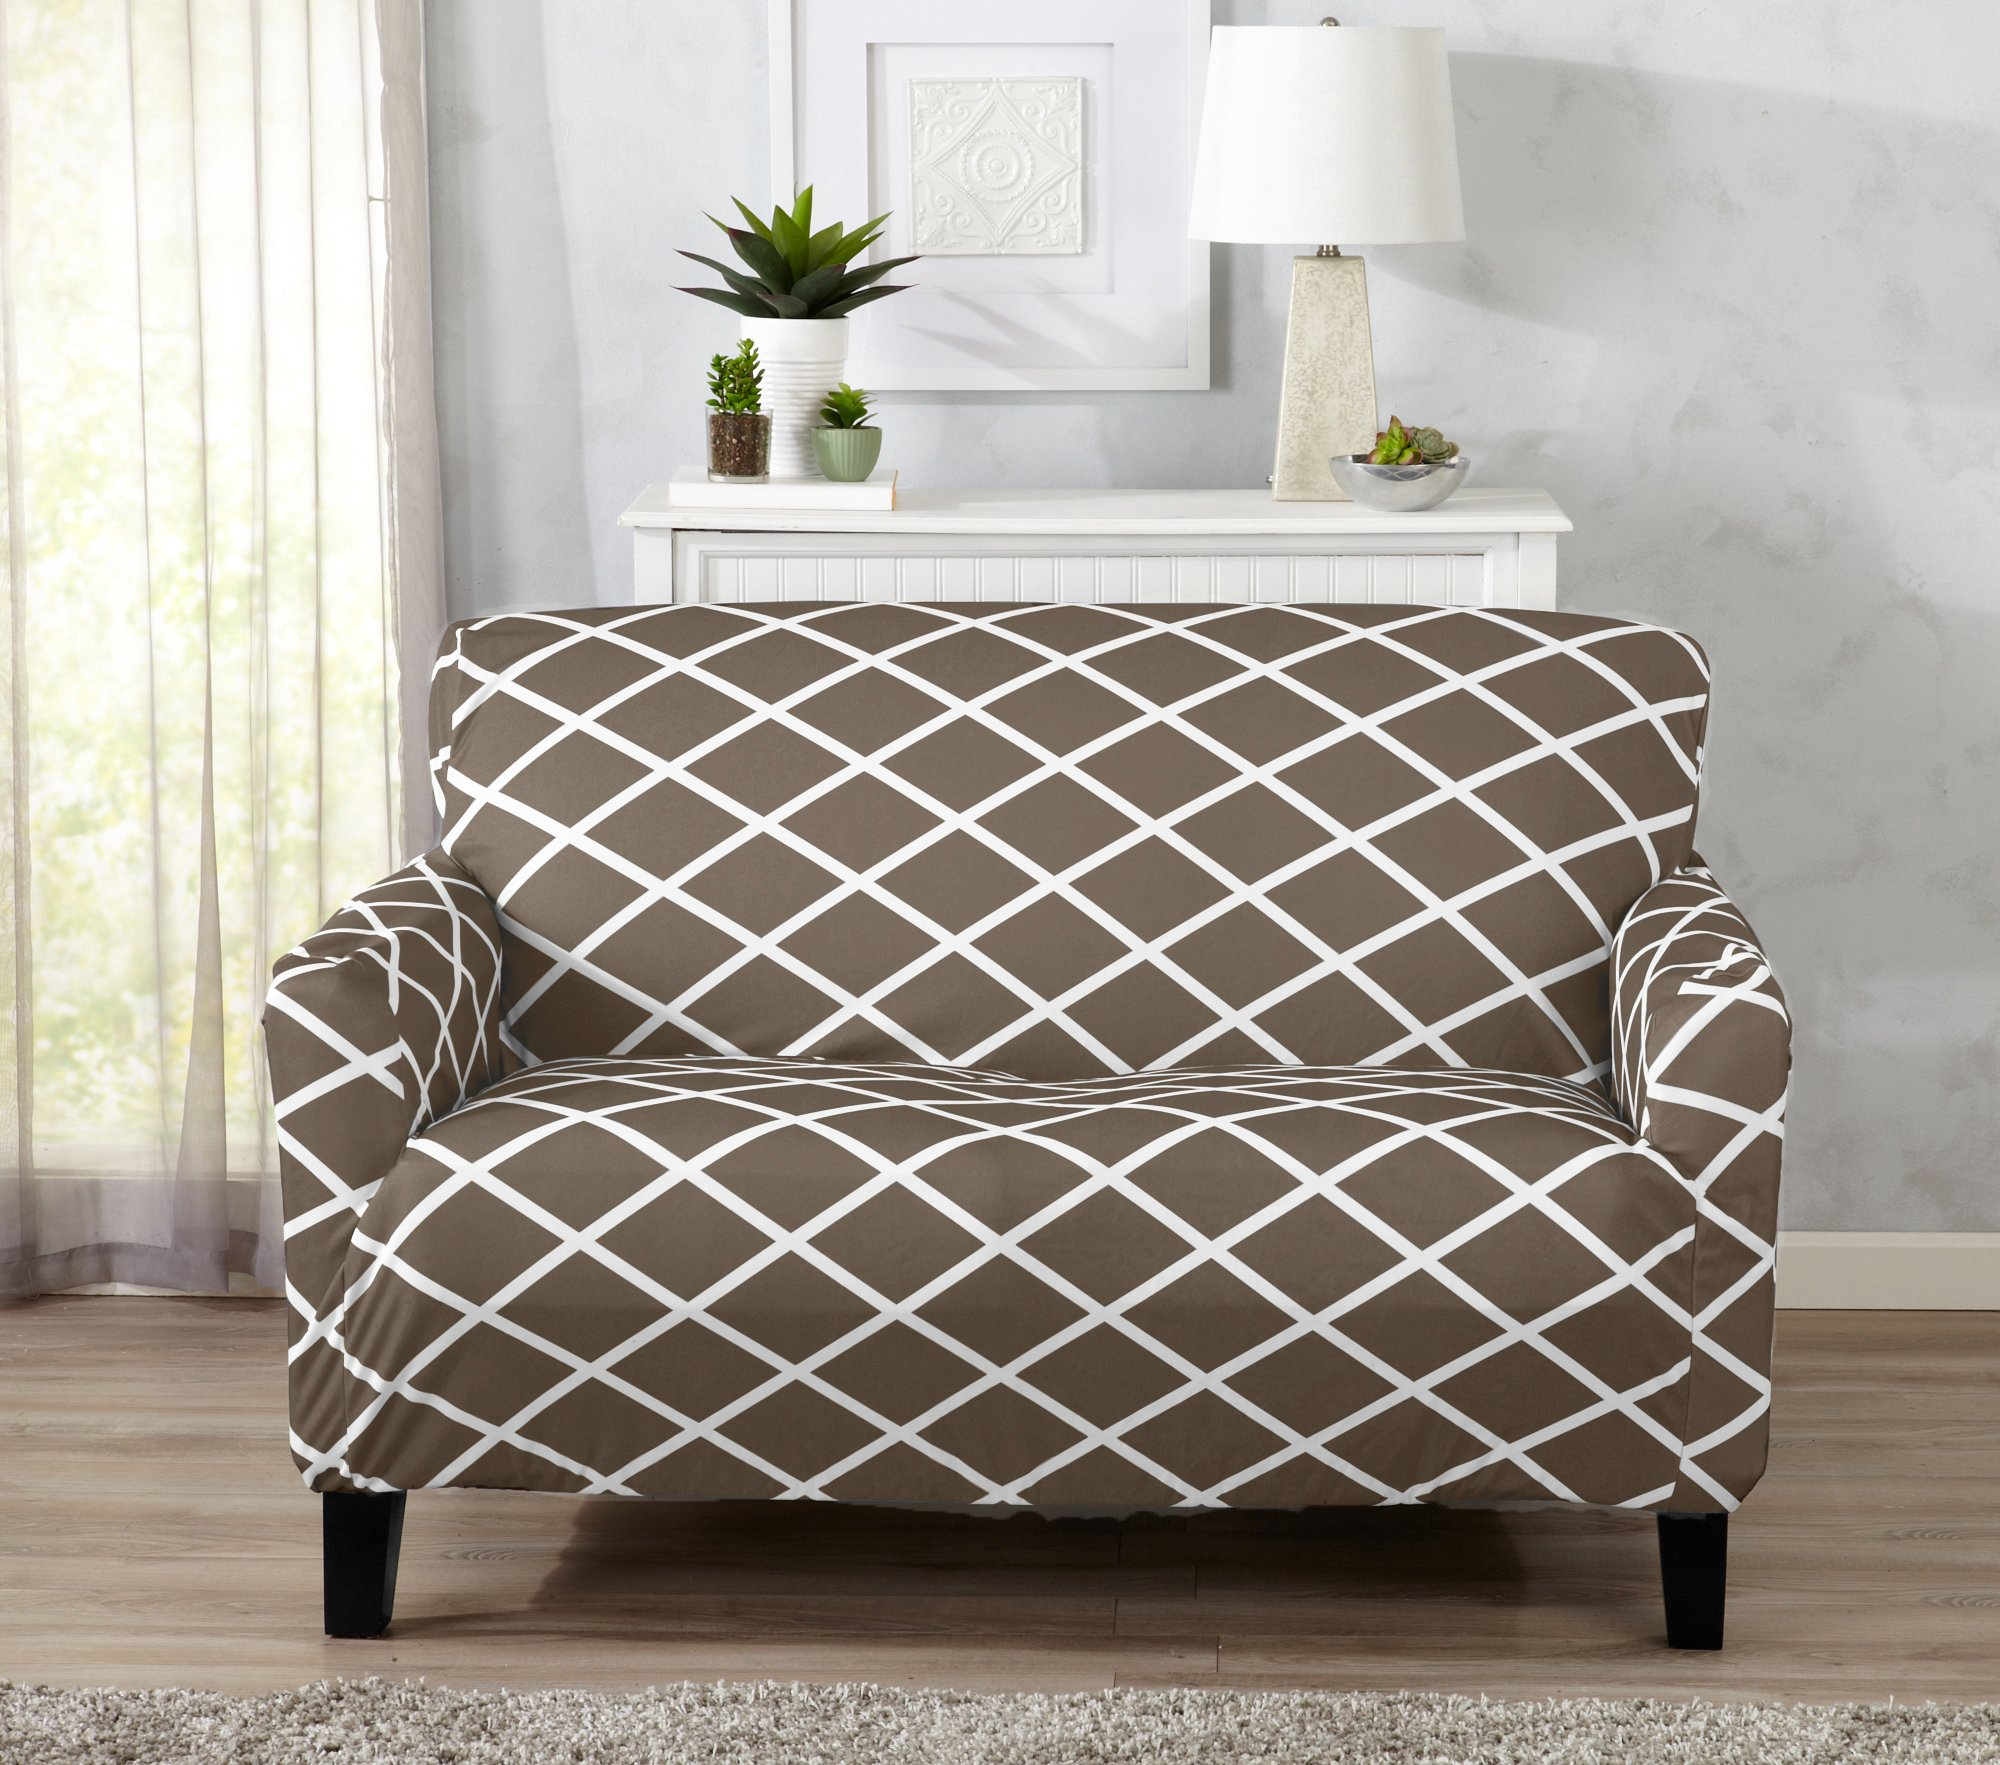 Great Bay Home Strapless Stretch Printed Slipcover Loveseat Cover, Stain and Spill Resistant. Tori Collection (Love Seat - Mocha)